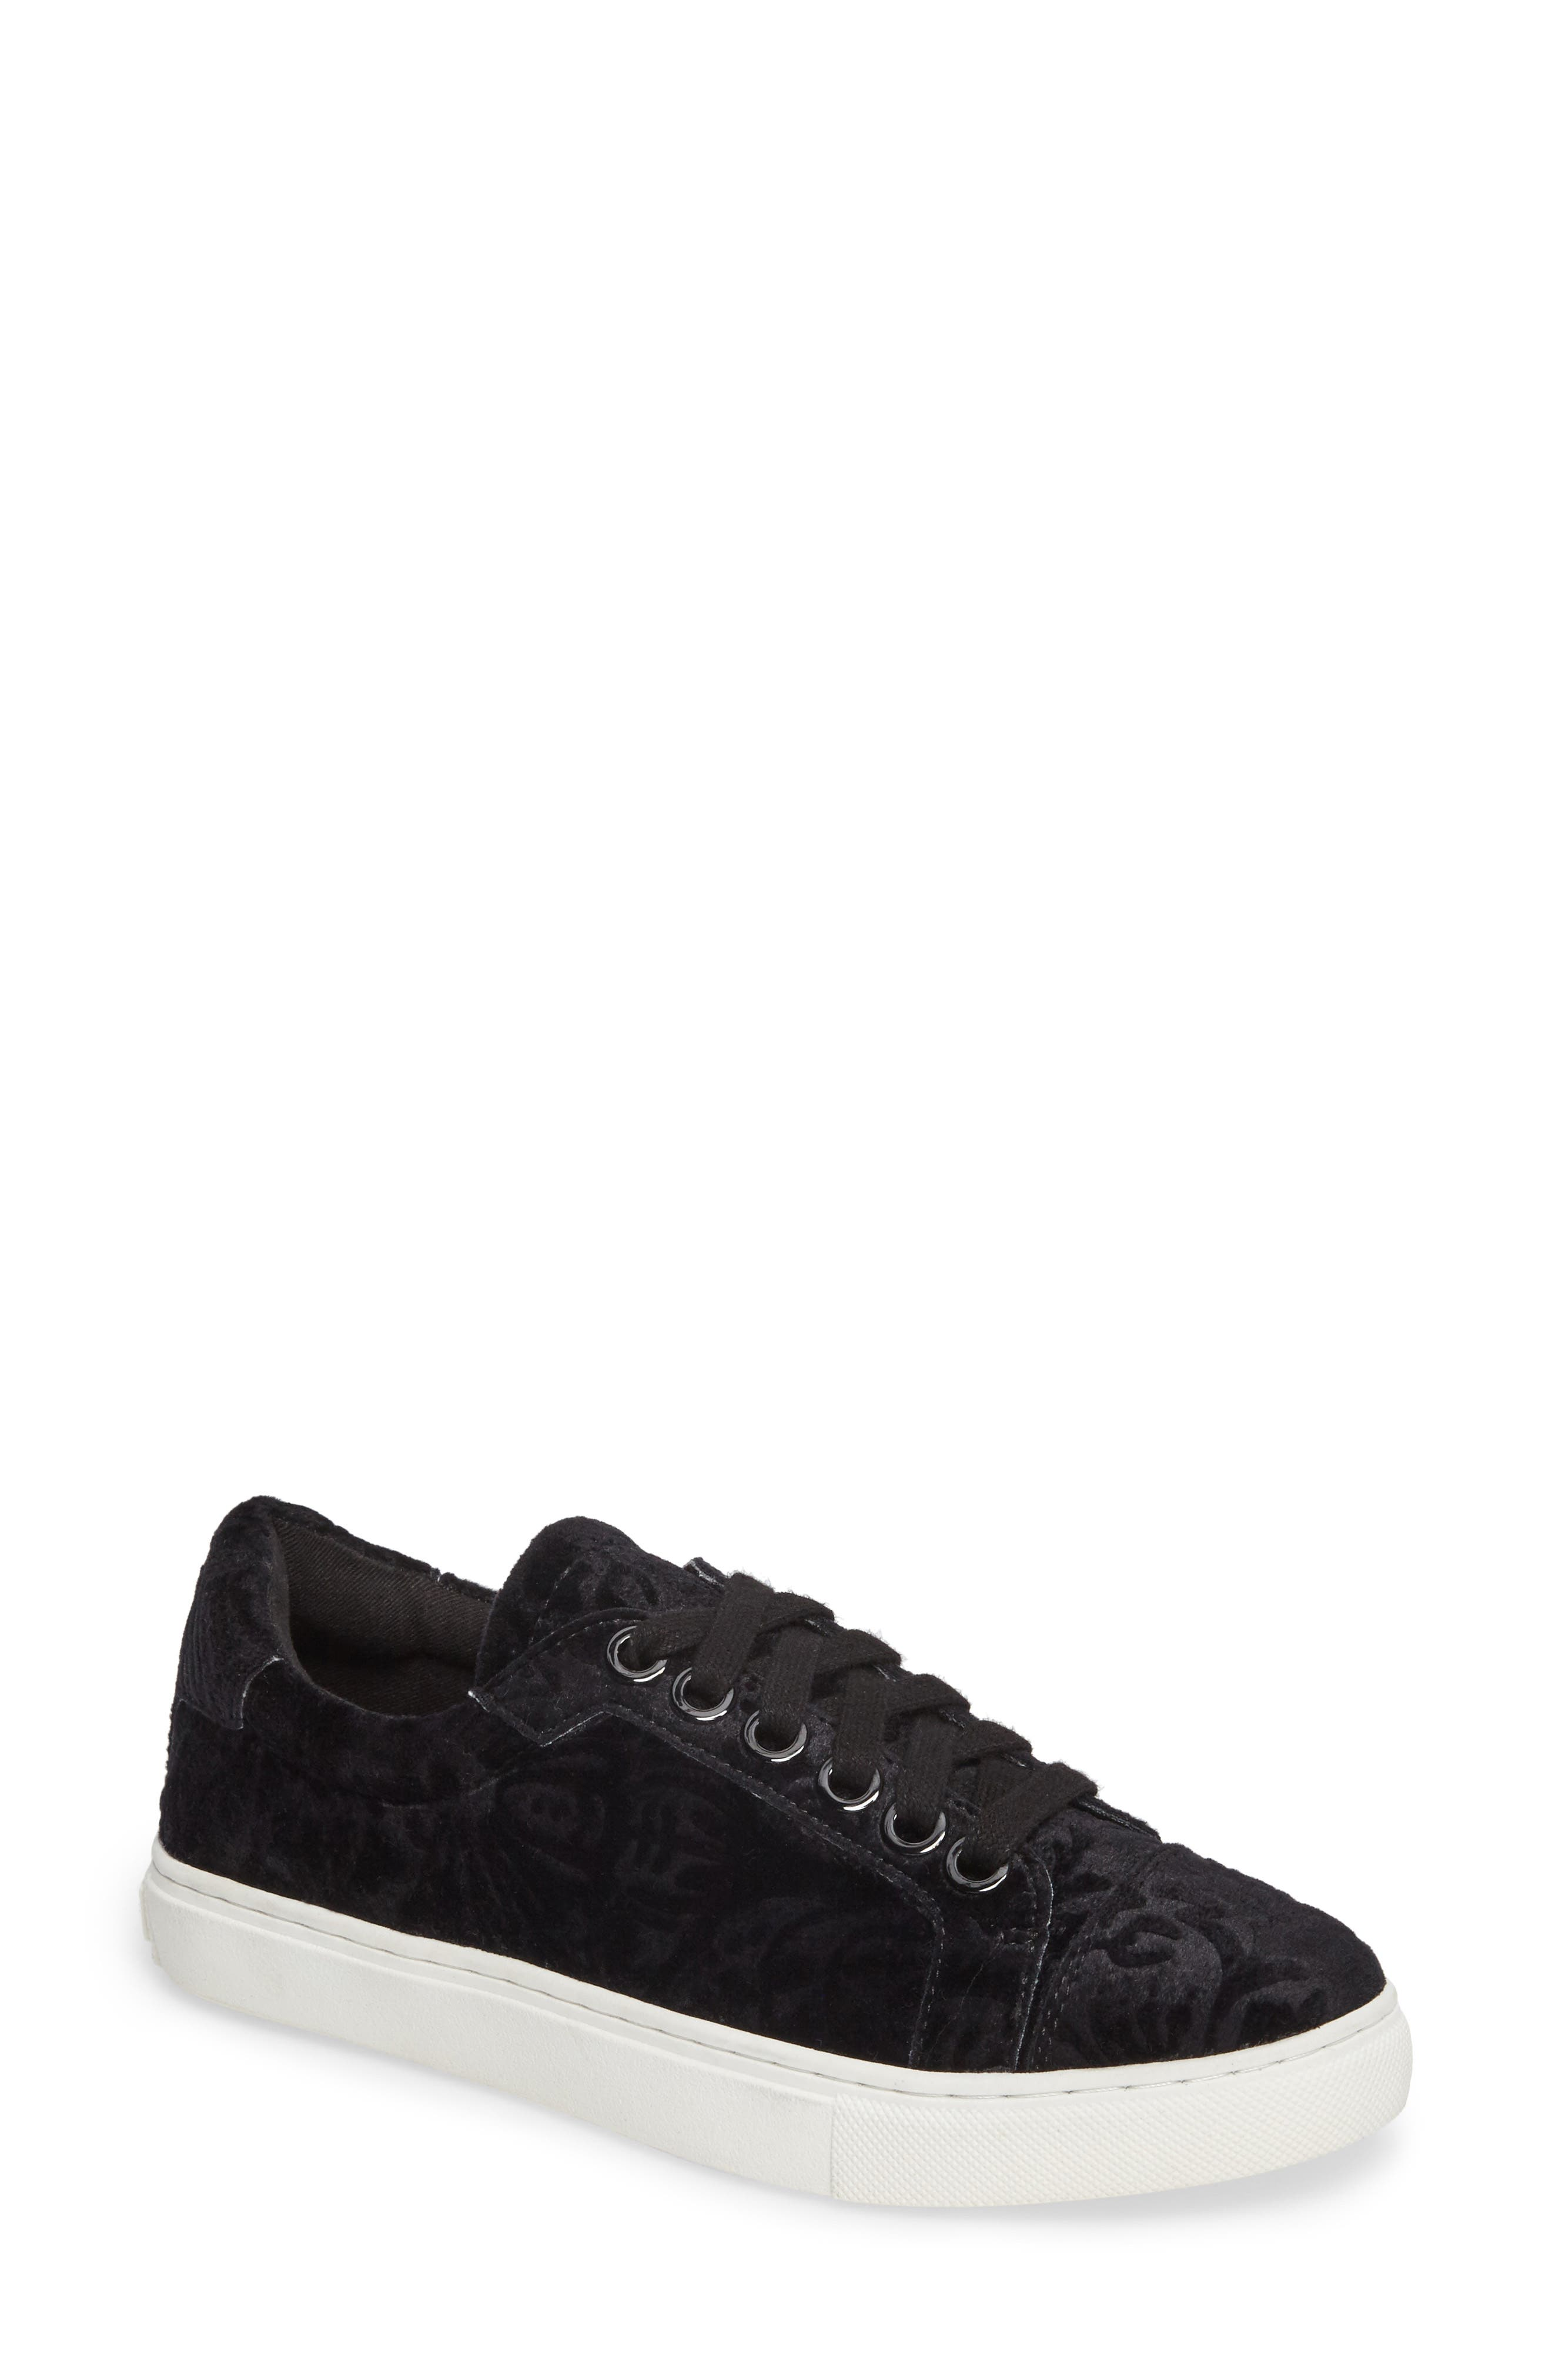 Bleecker Too Sneaker,                             Main thumbnail 1, color,                             Black Floral Velvet